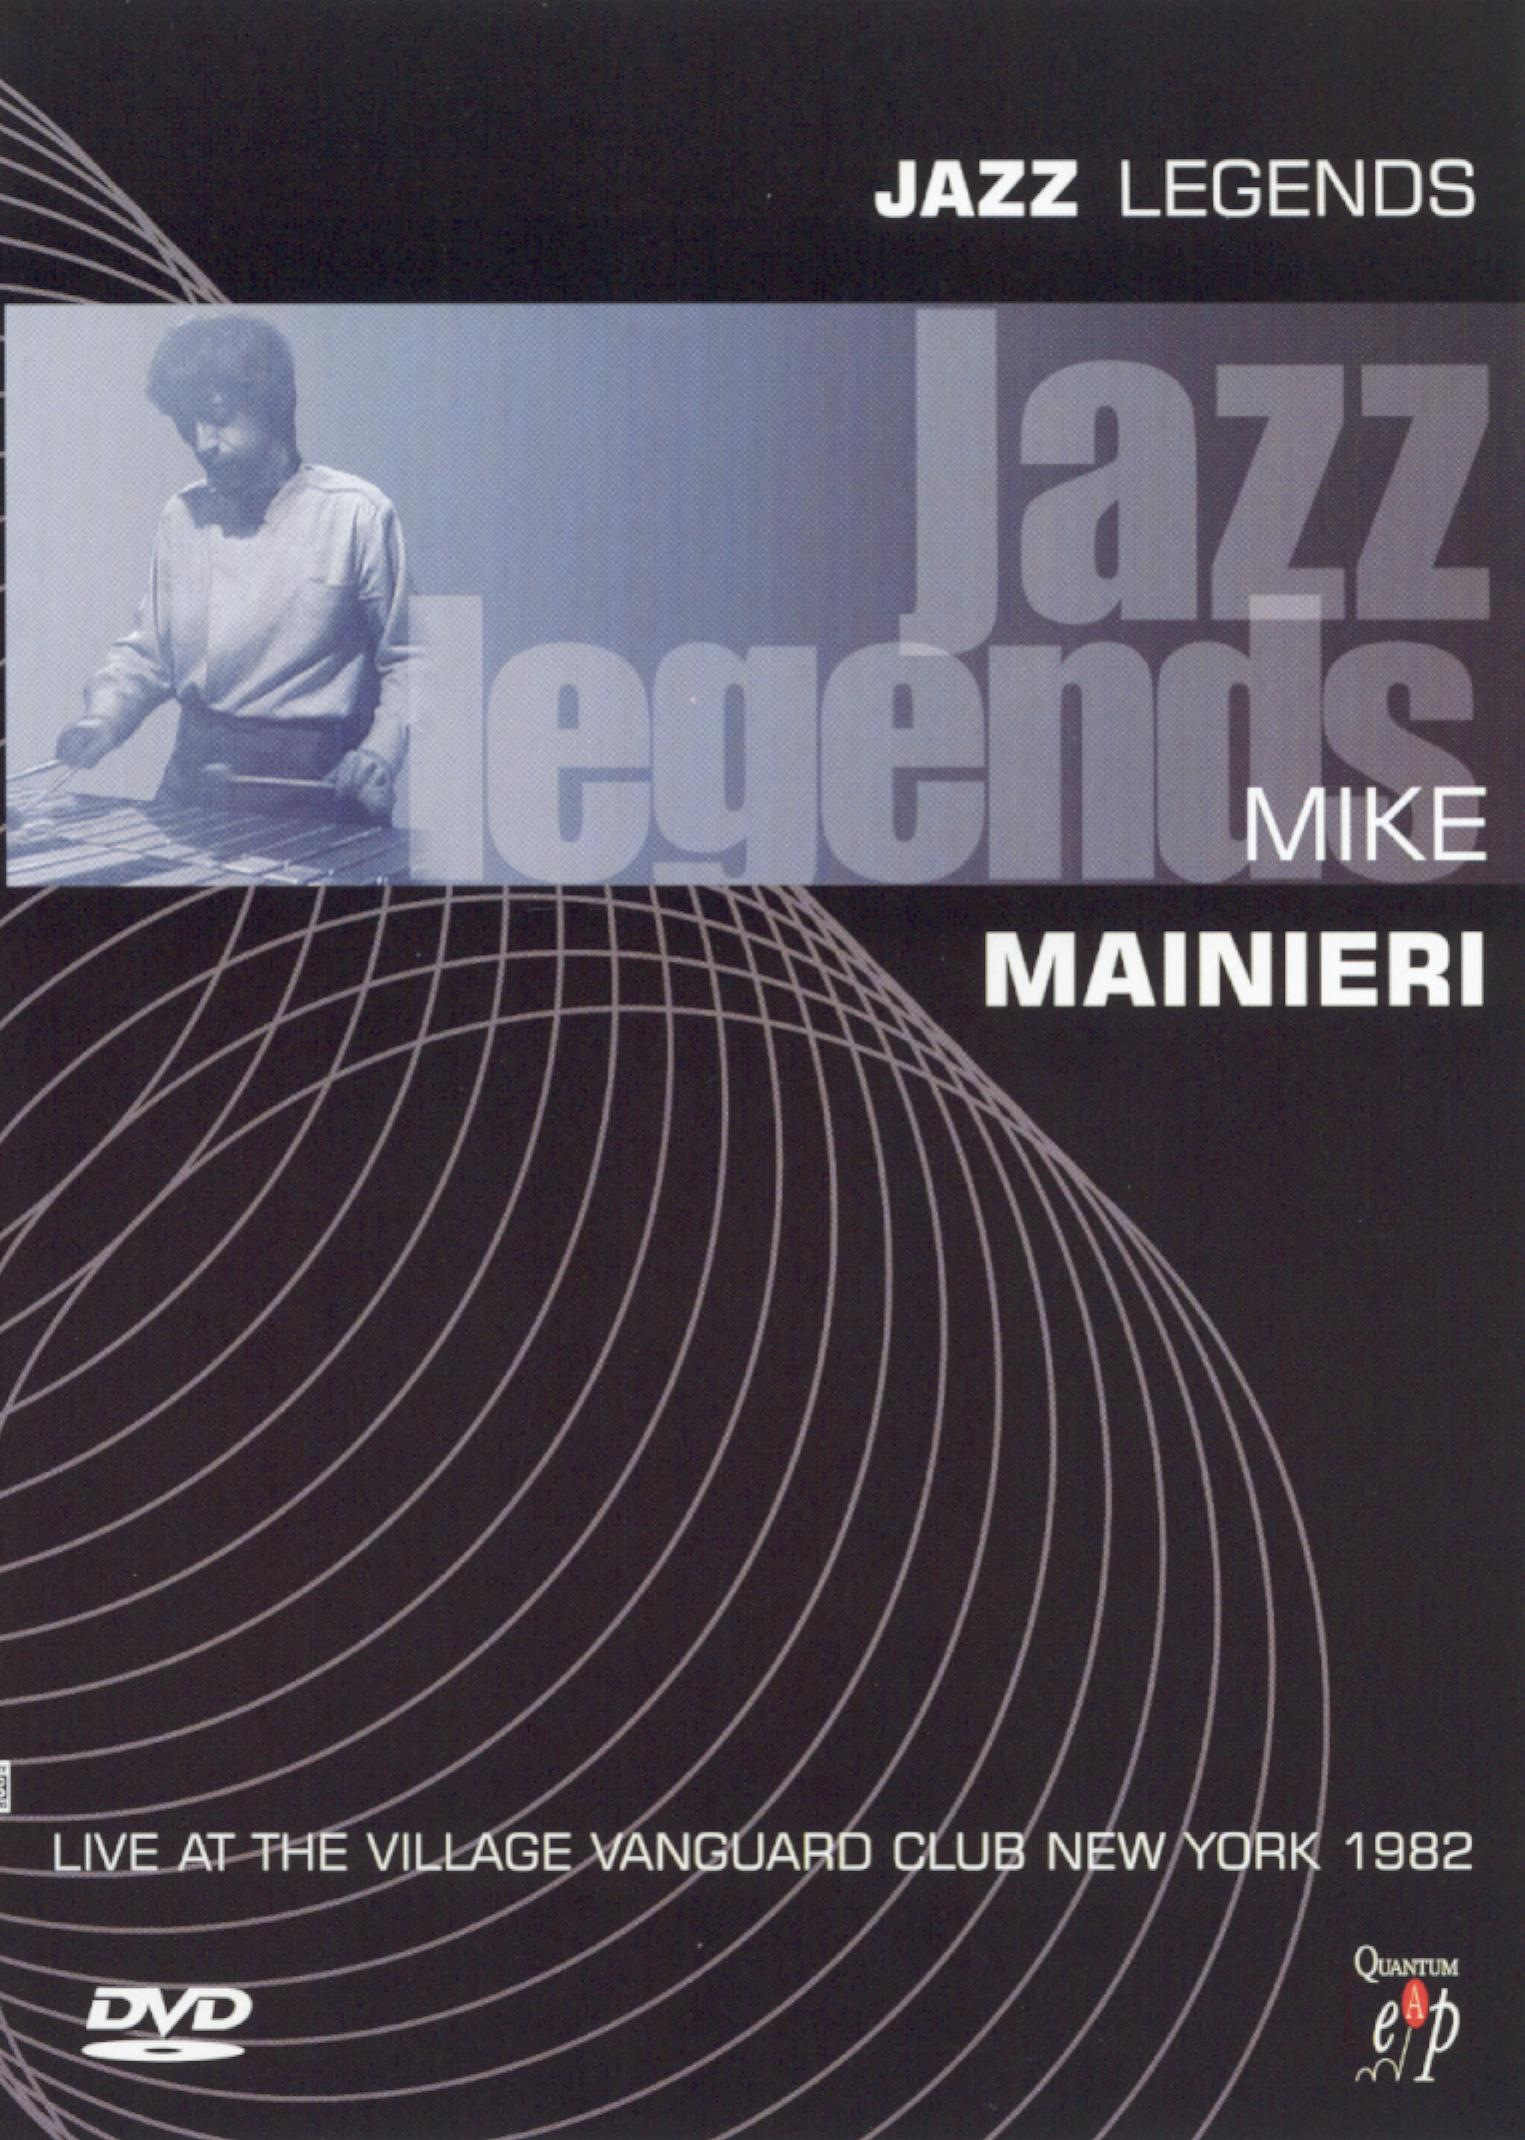 Jazz Legends: Mike Mainieri - Live at the Village Vanguard Club New York 1982